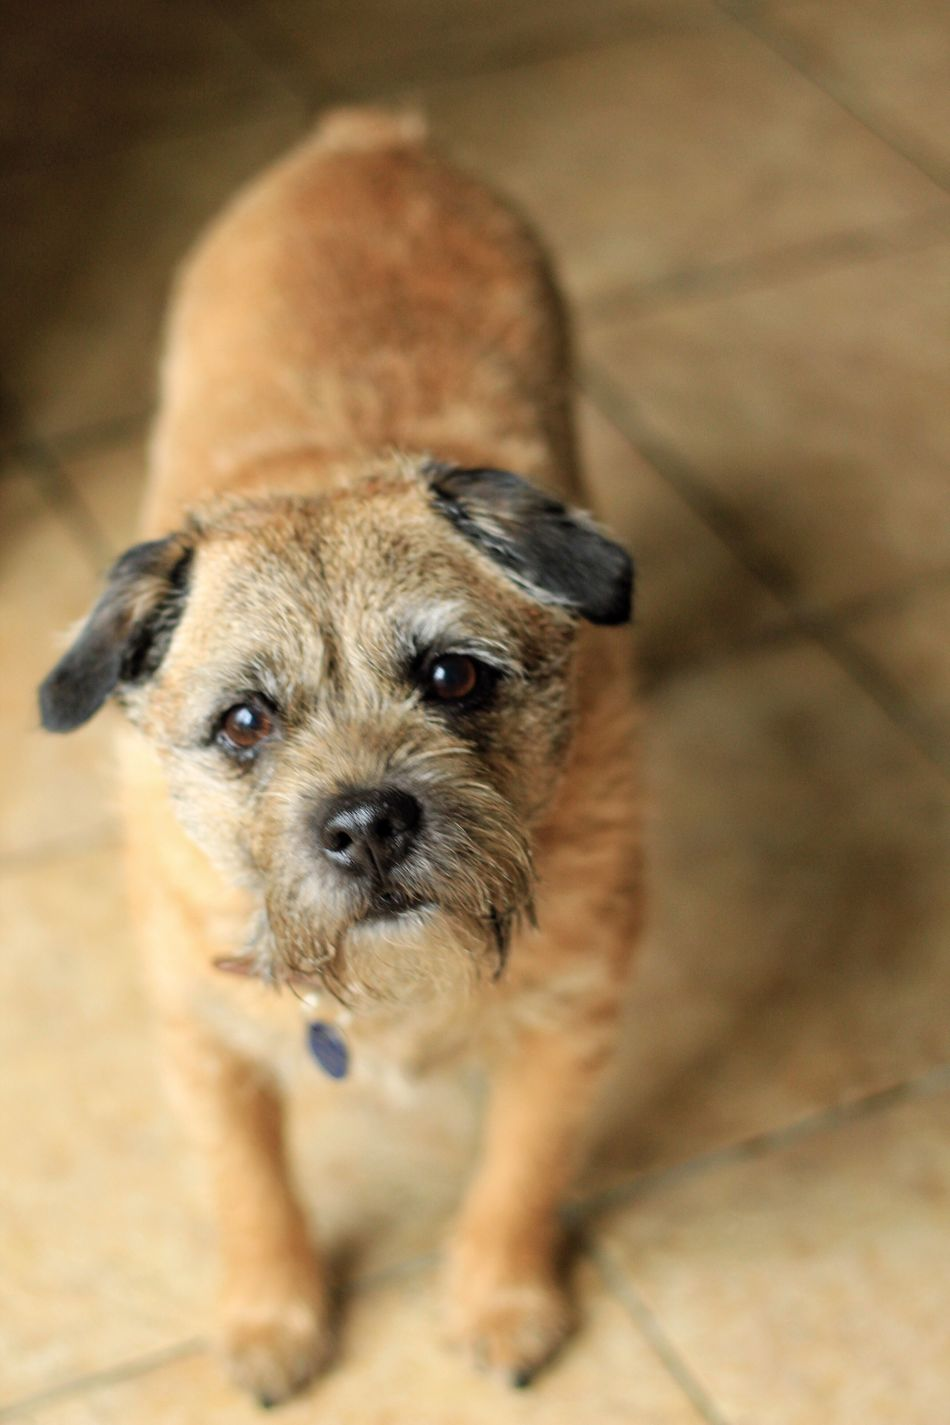 Dog Pets Domestic Animals Looking At Camera One Animal Animal Themes Mammal Portrait No People Indoors  Home Interior Close-up Day Shih Tzu Dog❤ Dogs Of EyeEm Terrier Dogs Boarder Leeds, UK Canon Indoors  Puppy Boarderterrier Dog Love